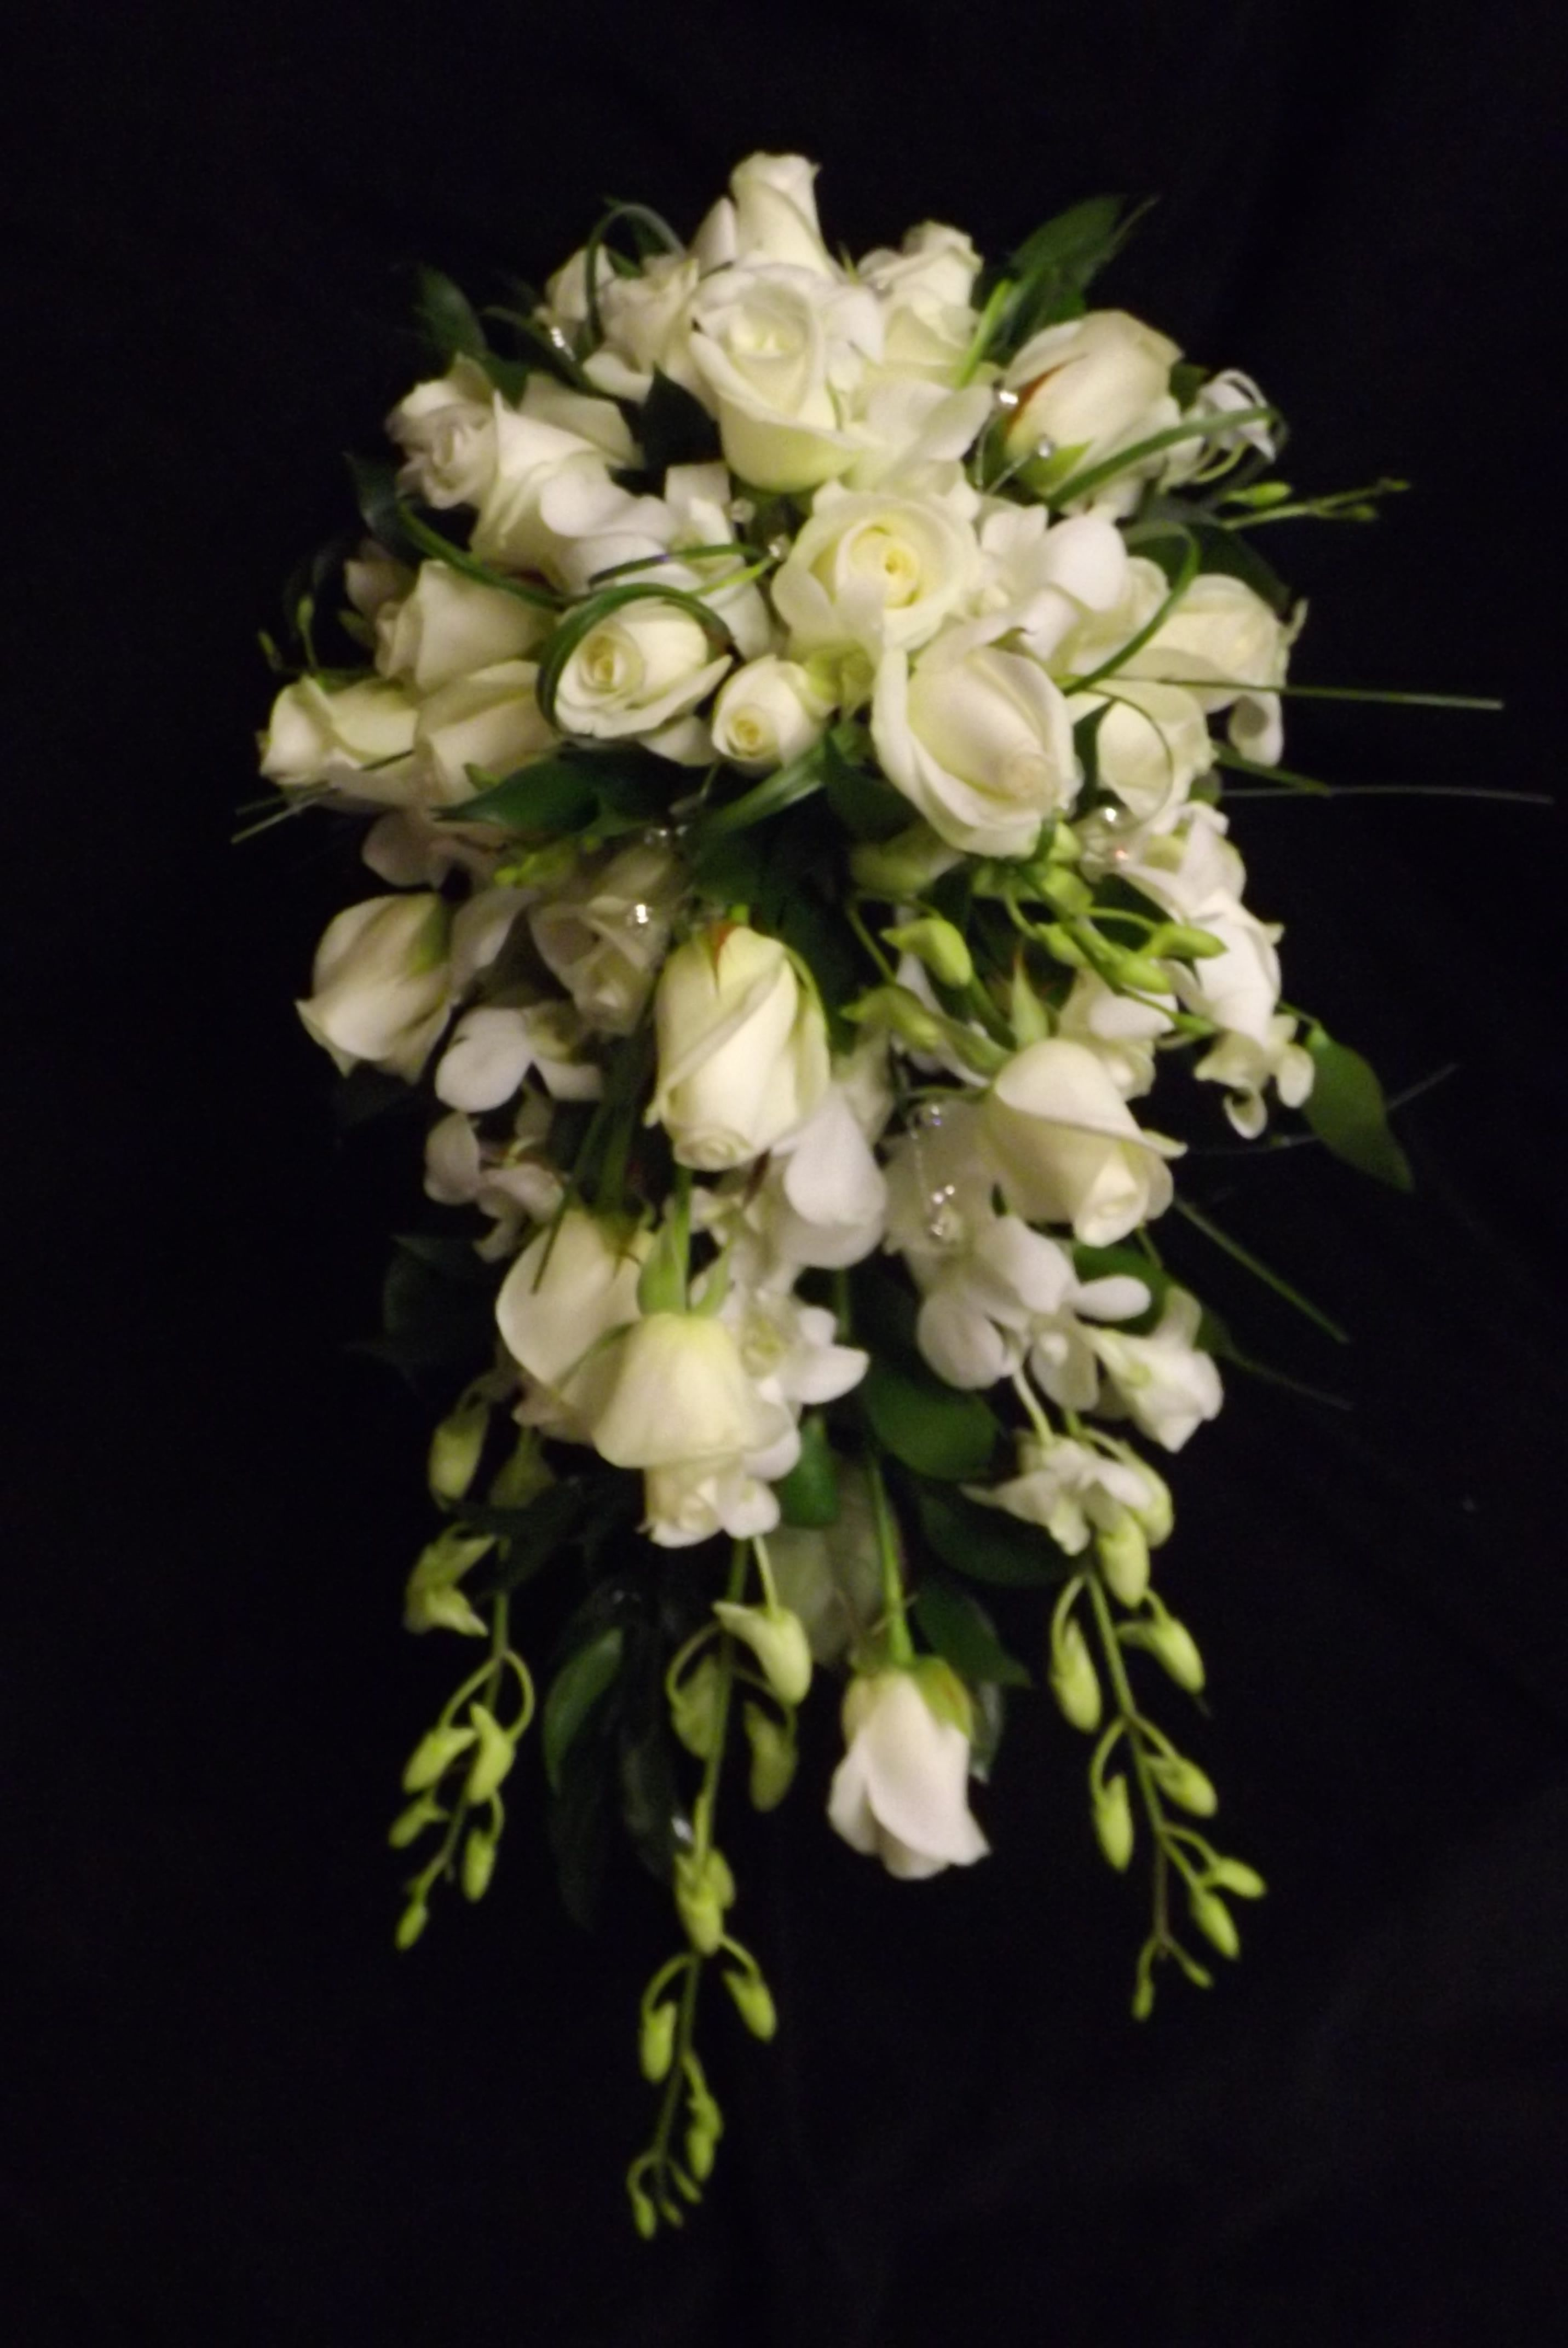 Singapore Orchid And Roses In A Cascade Shower Bouquet Www Weddingflowersbylaura Com Floral Wedding Bouquet Images Spray Roses